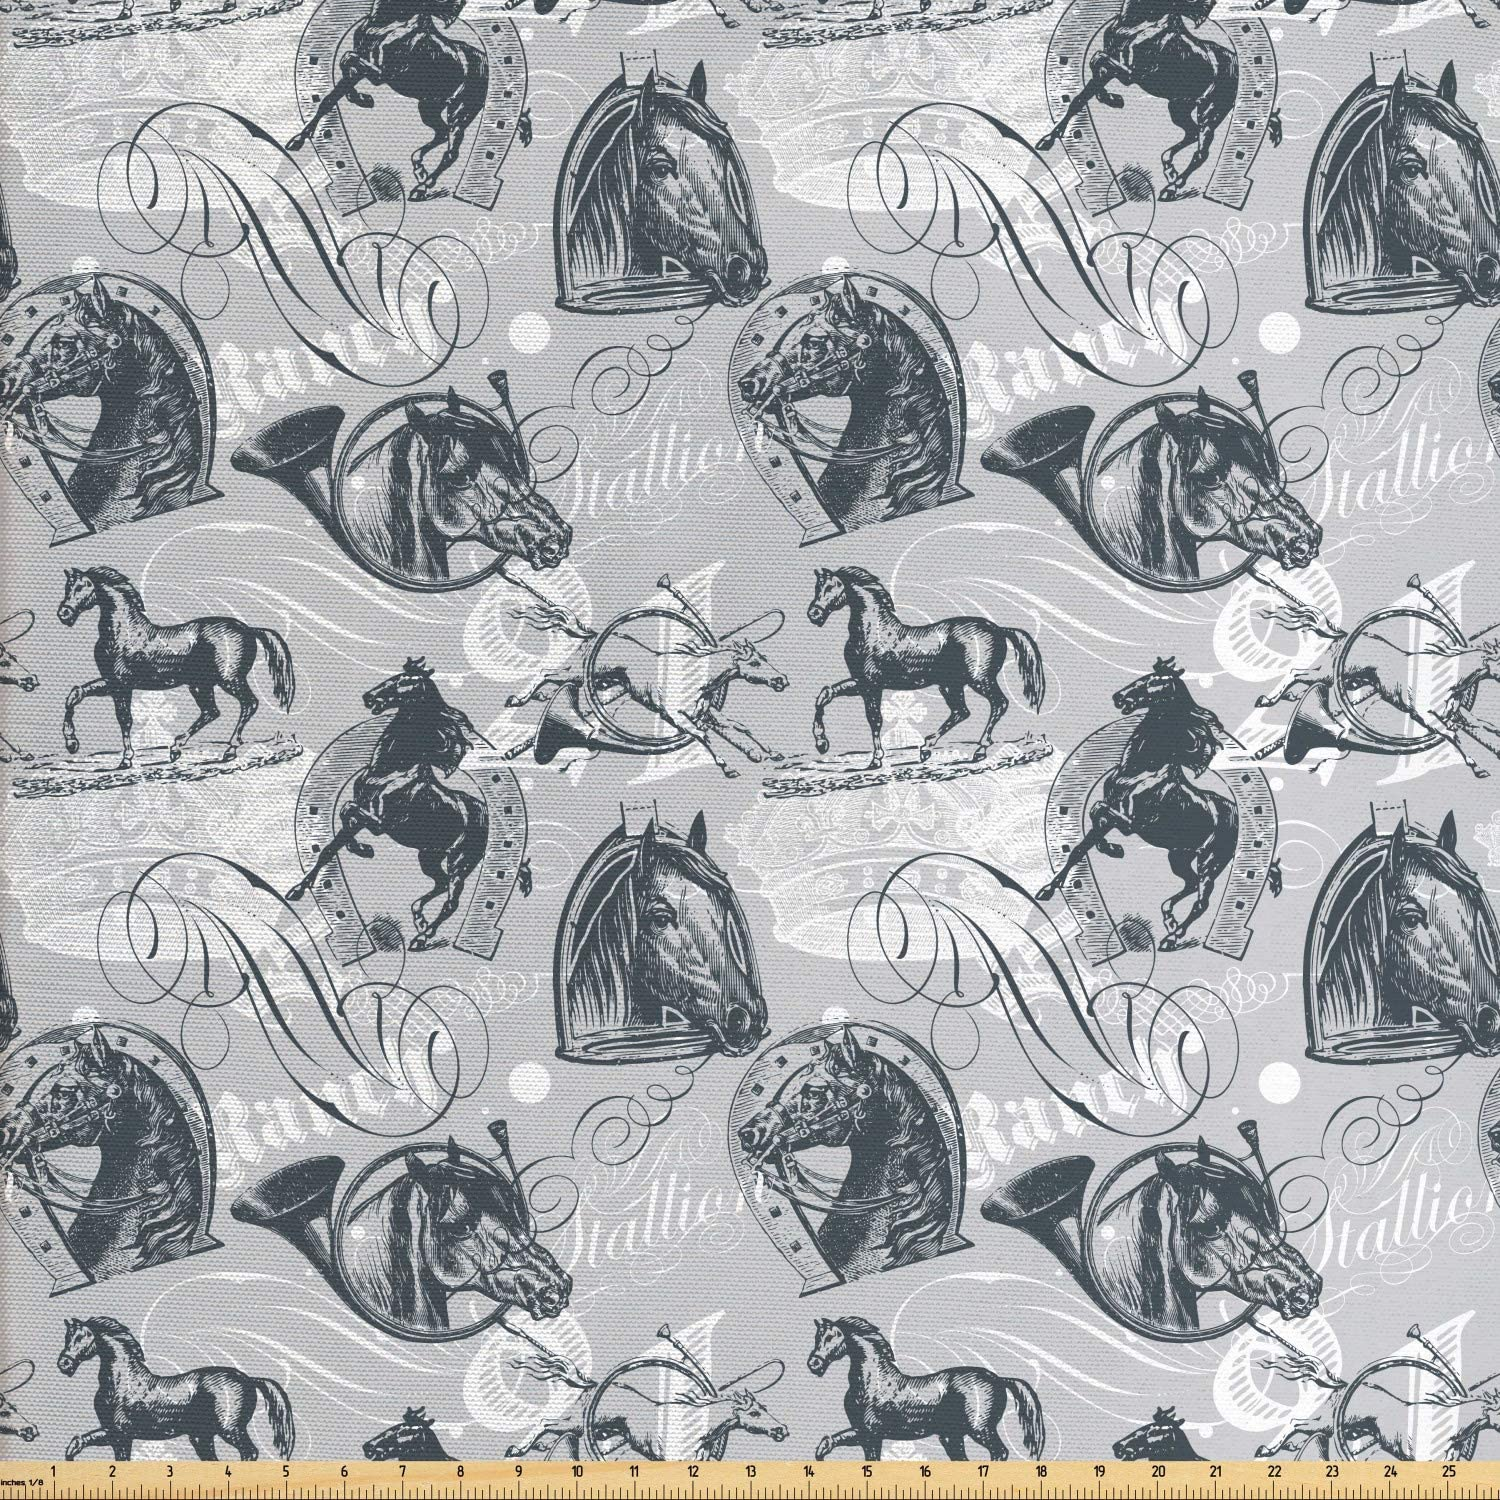 Ambesonne Horses Fabric by The Yard, Vintage Monochrome Sketch Stallion Swirls Calligraphic Design Animal Theme, Decorative Fabric for Upholstery and Home Accents, 3 Yards, Grey White